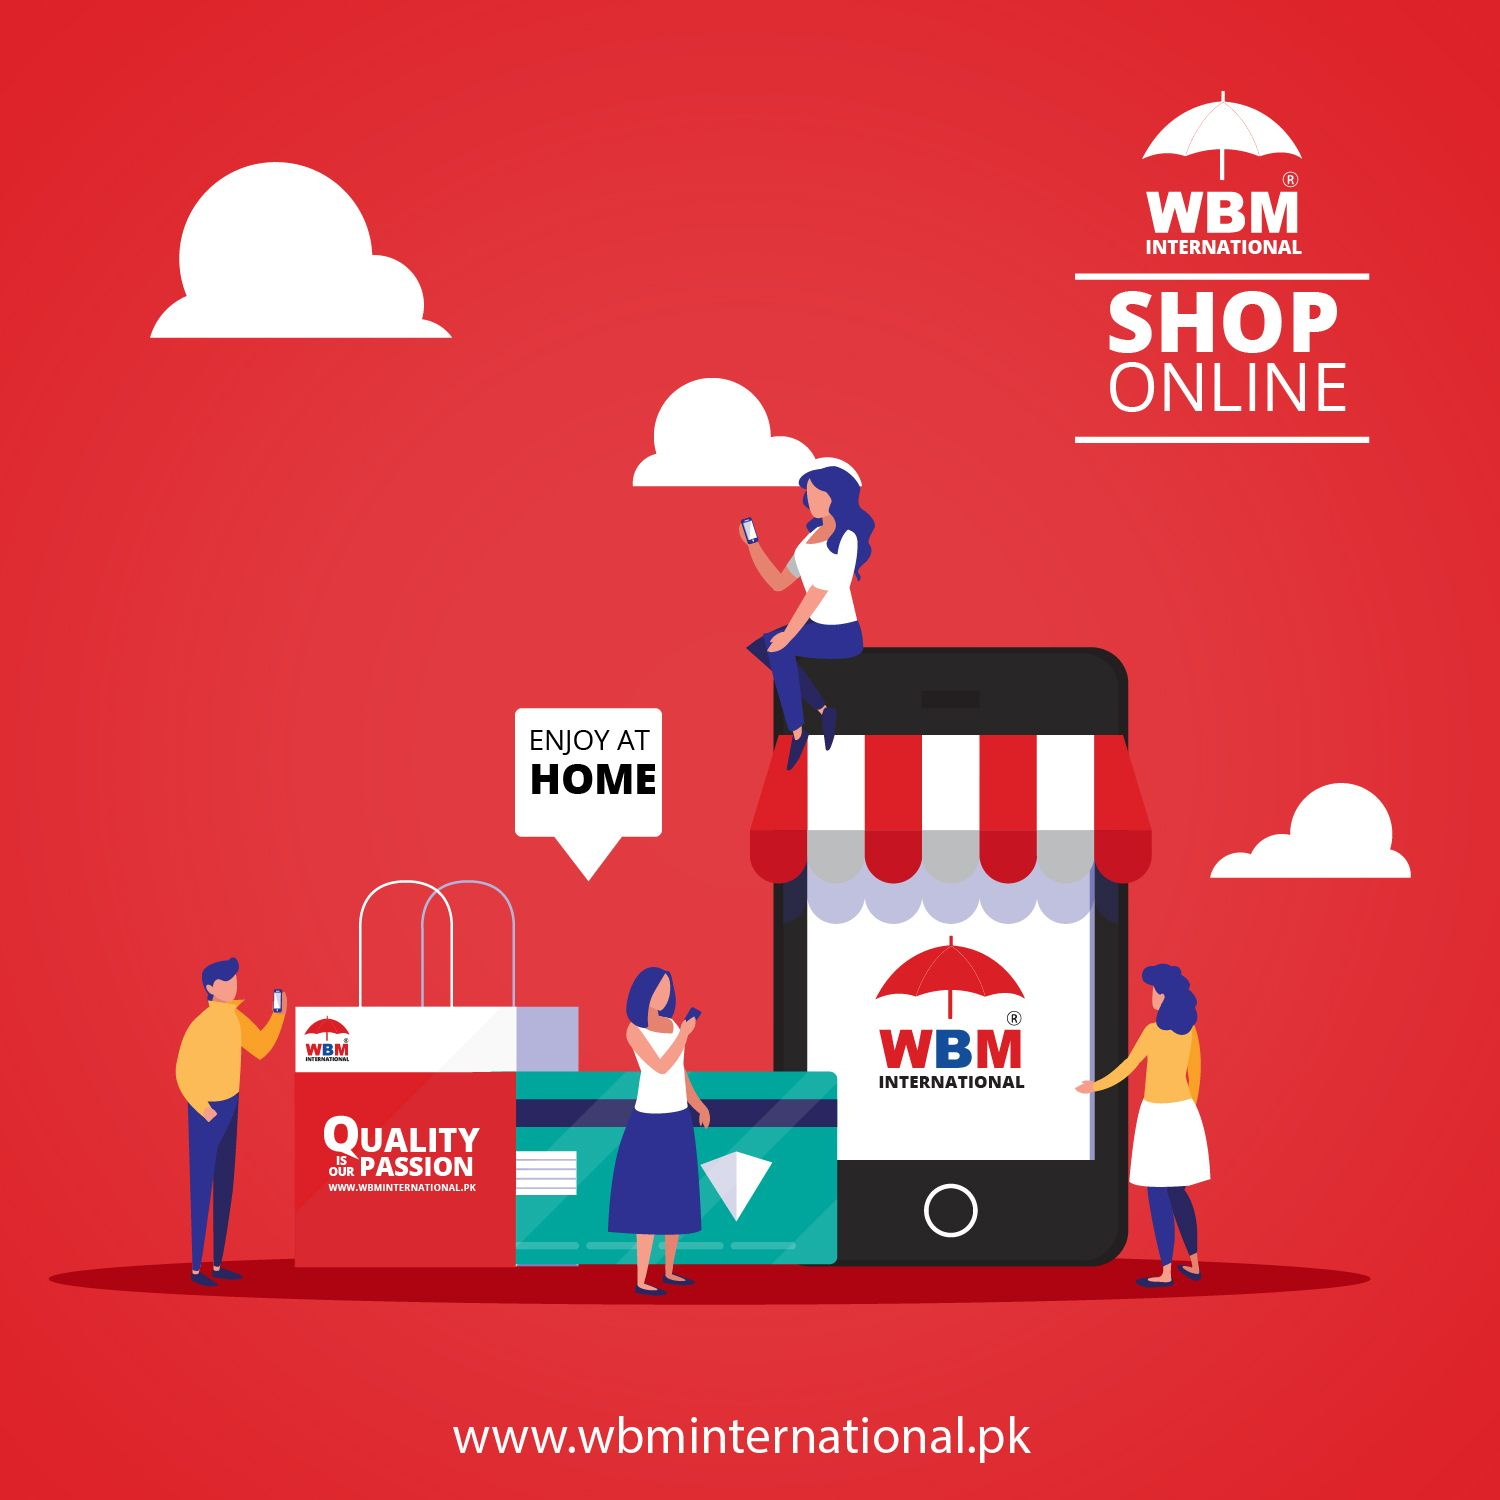 Shop Online while staying in your home. We are offering